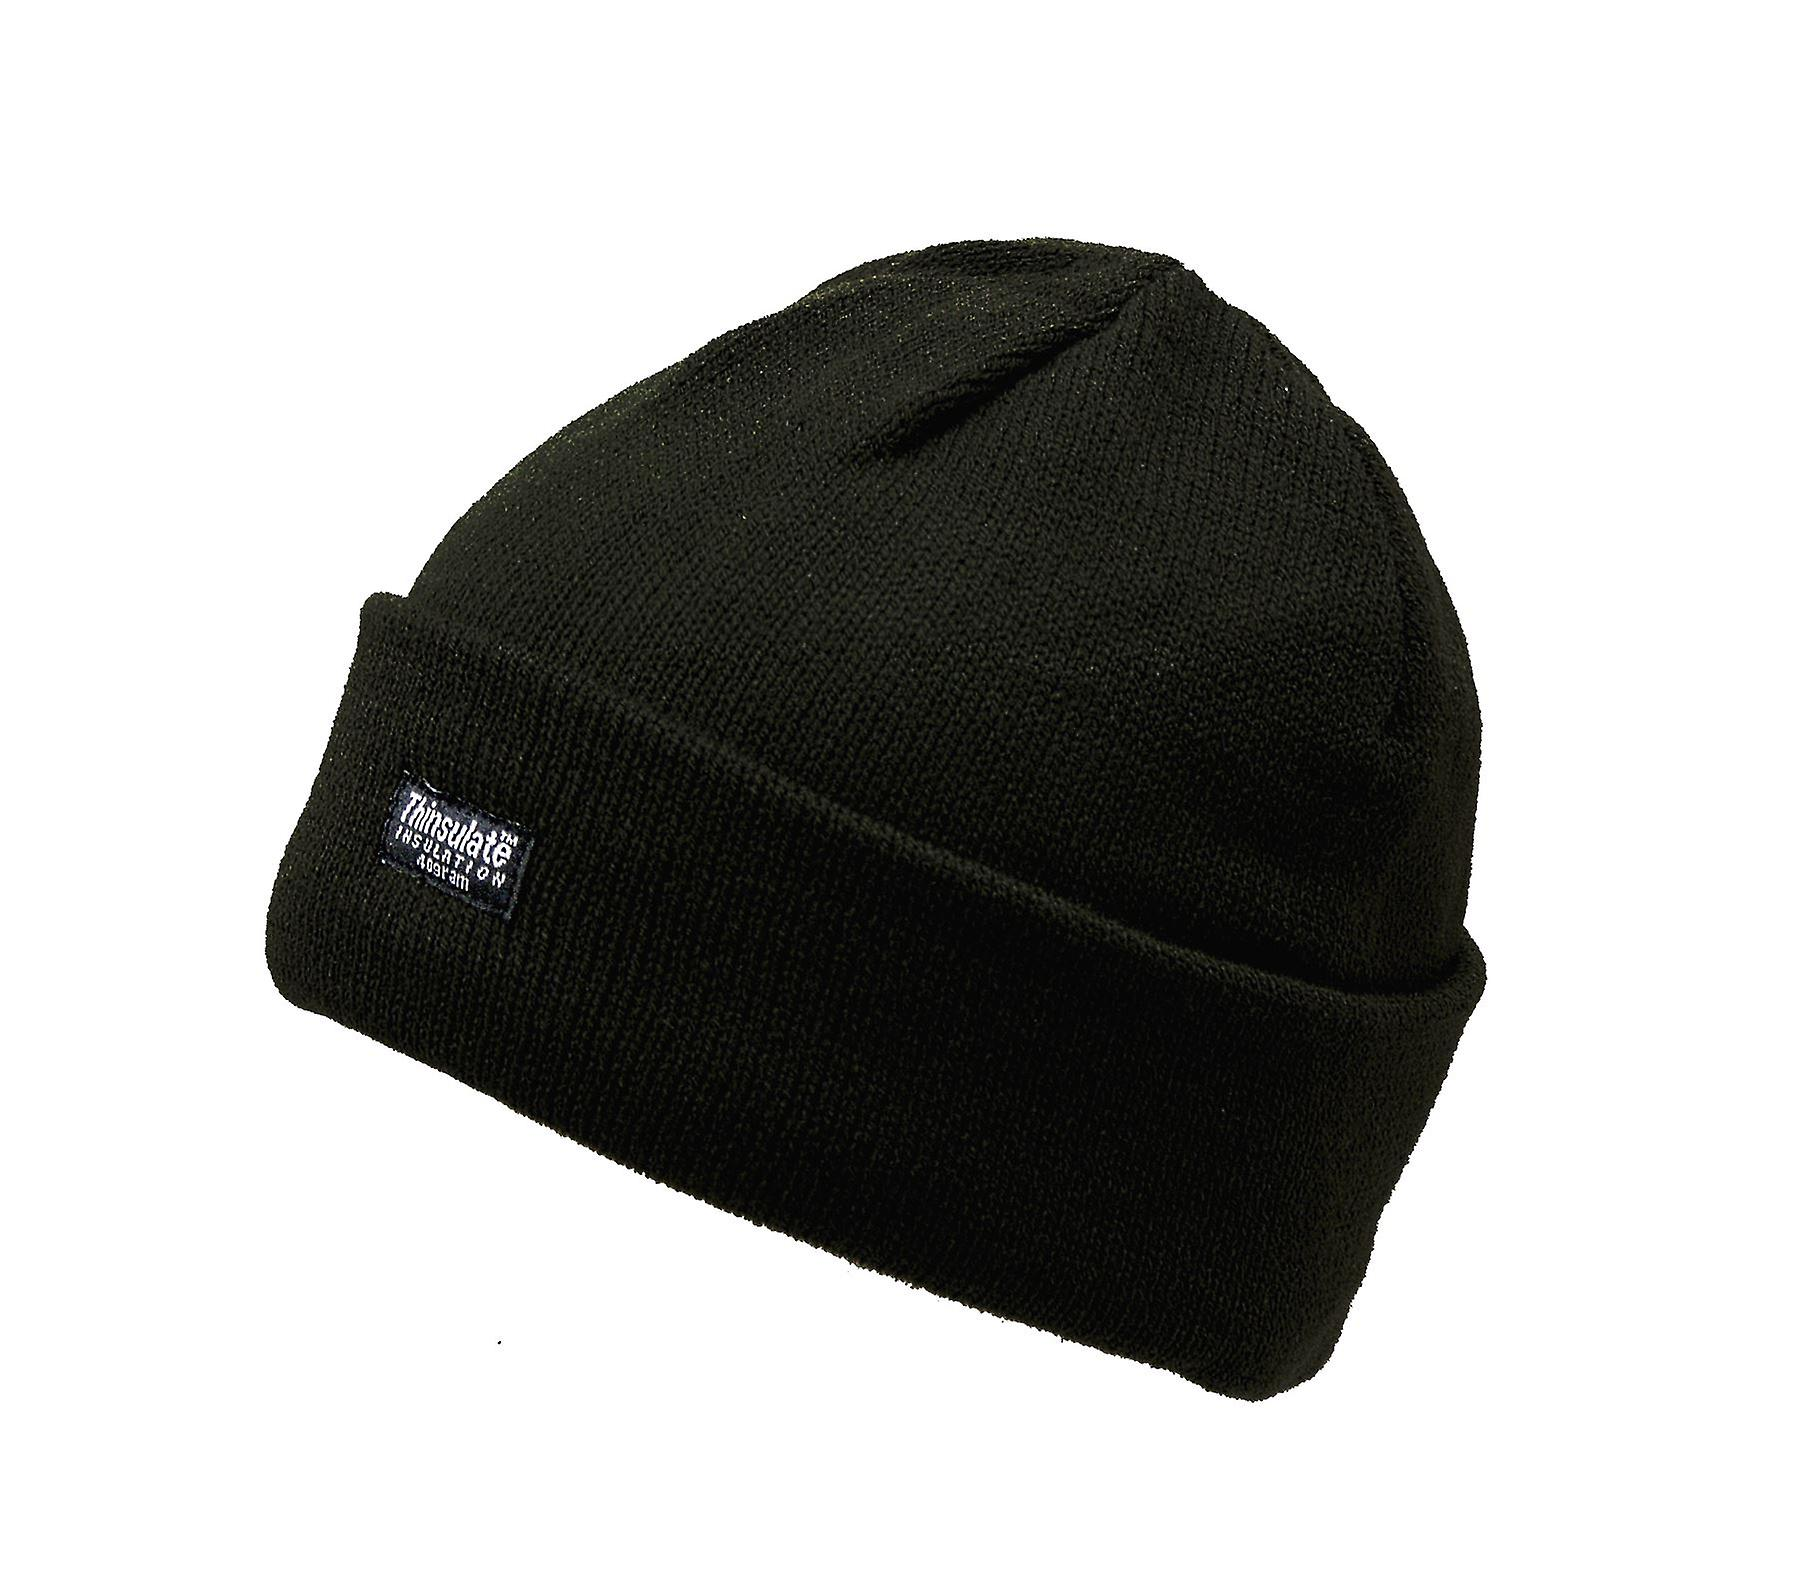 New Thinsulate Bob Hat Military Watch Cap